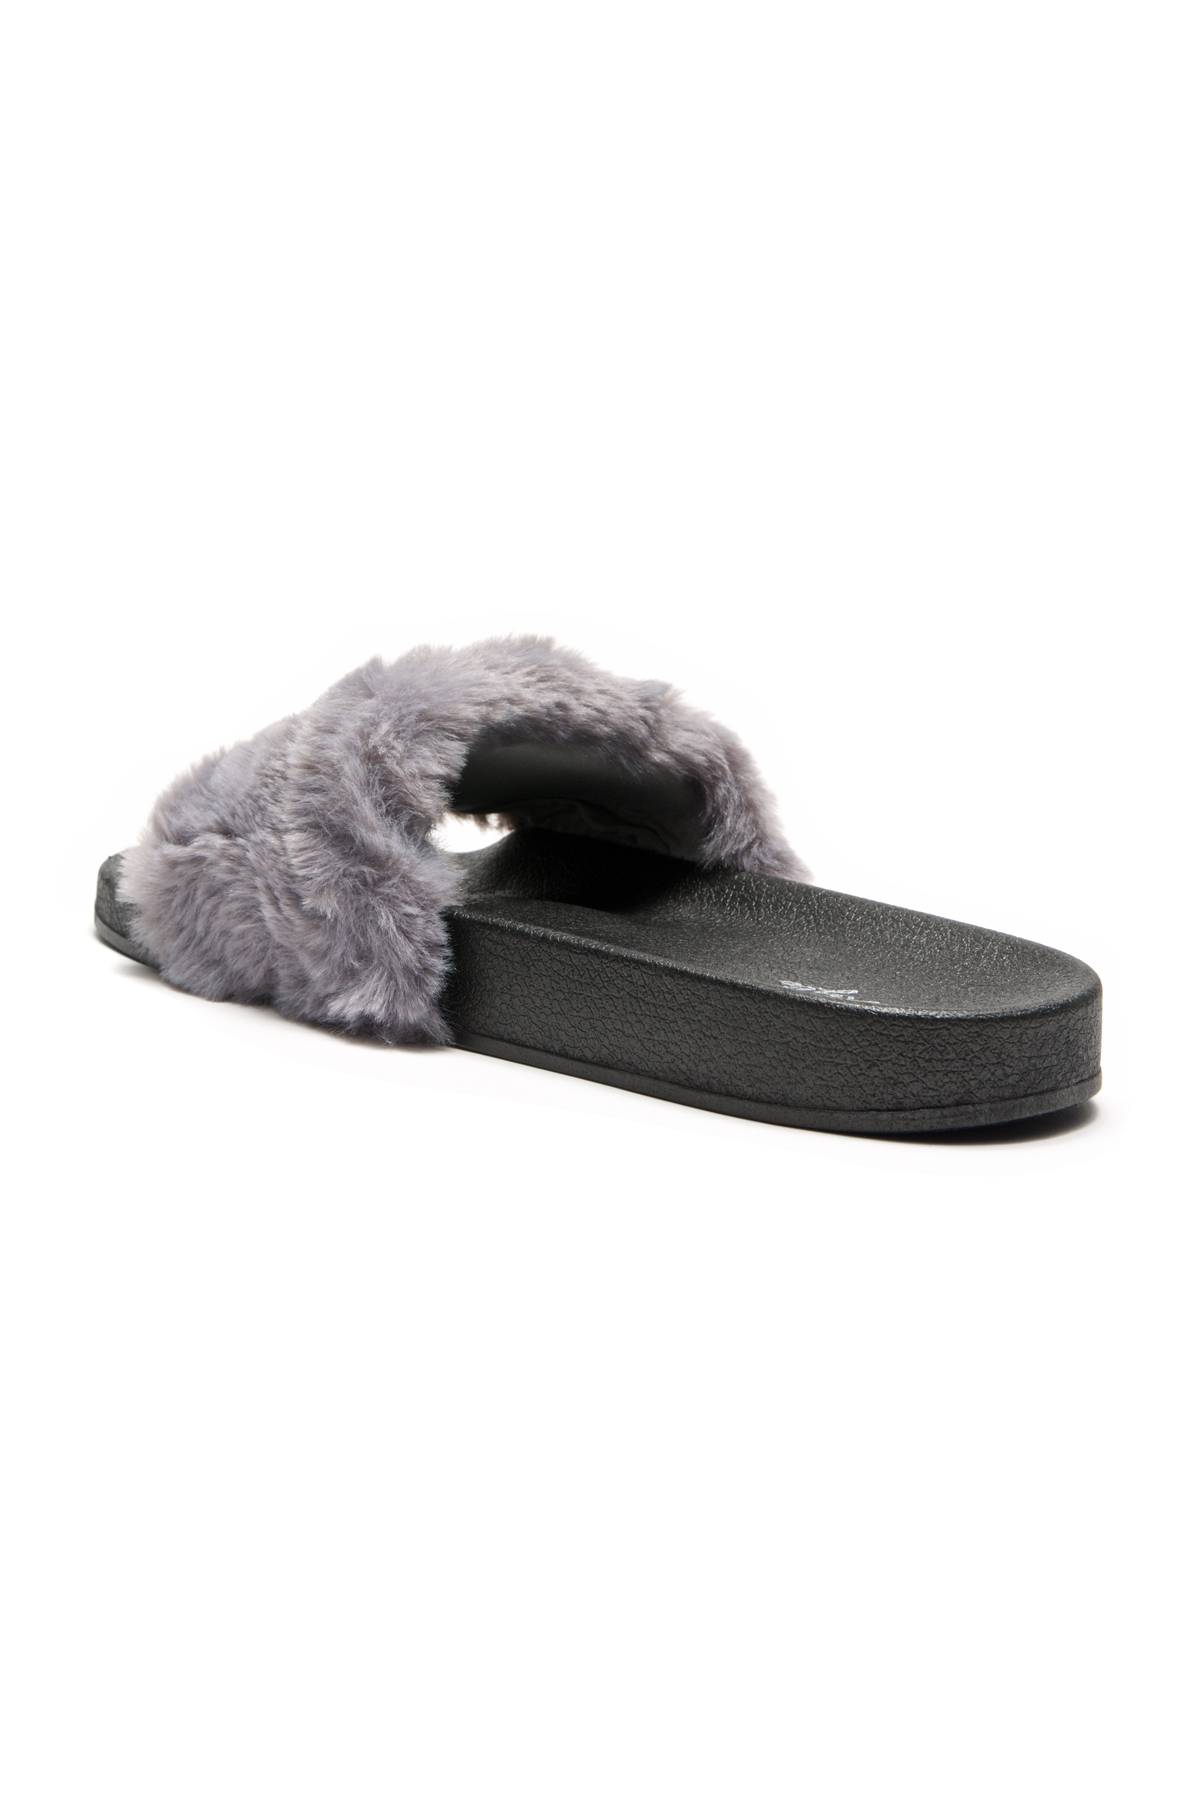 6bcc0cb9b HerStyle SL-16110102 Faux Fur Slide Sandal with chain Accent-Grey